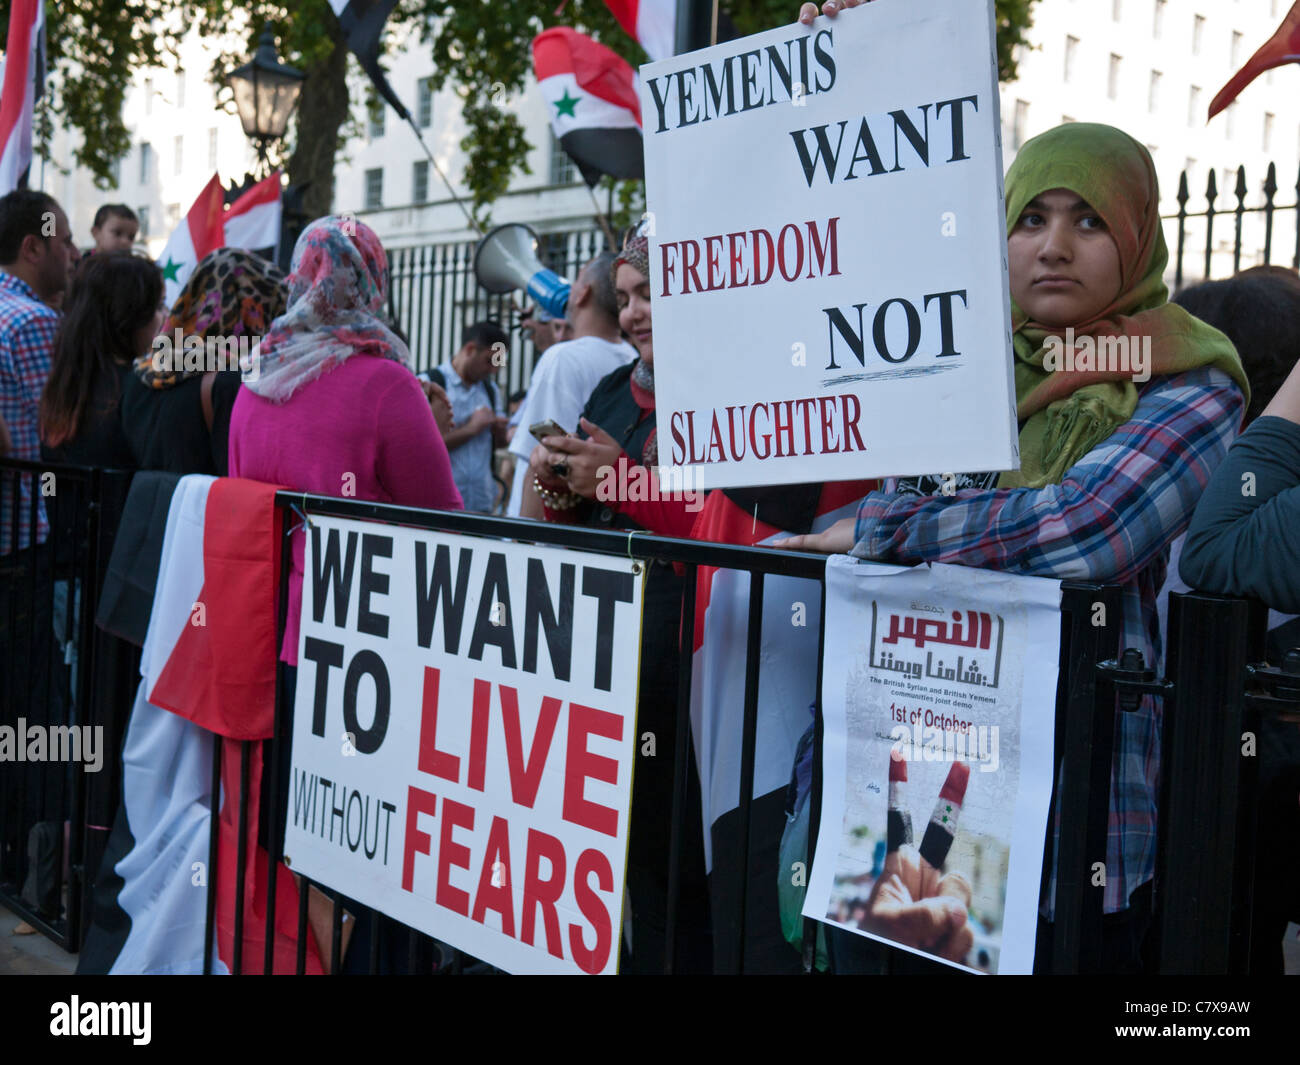 People demonstrating near Downing Street, in Whitehall London against the regime in Yemen and Syria - Stock Image